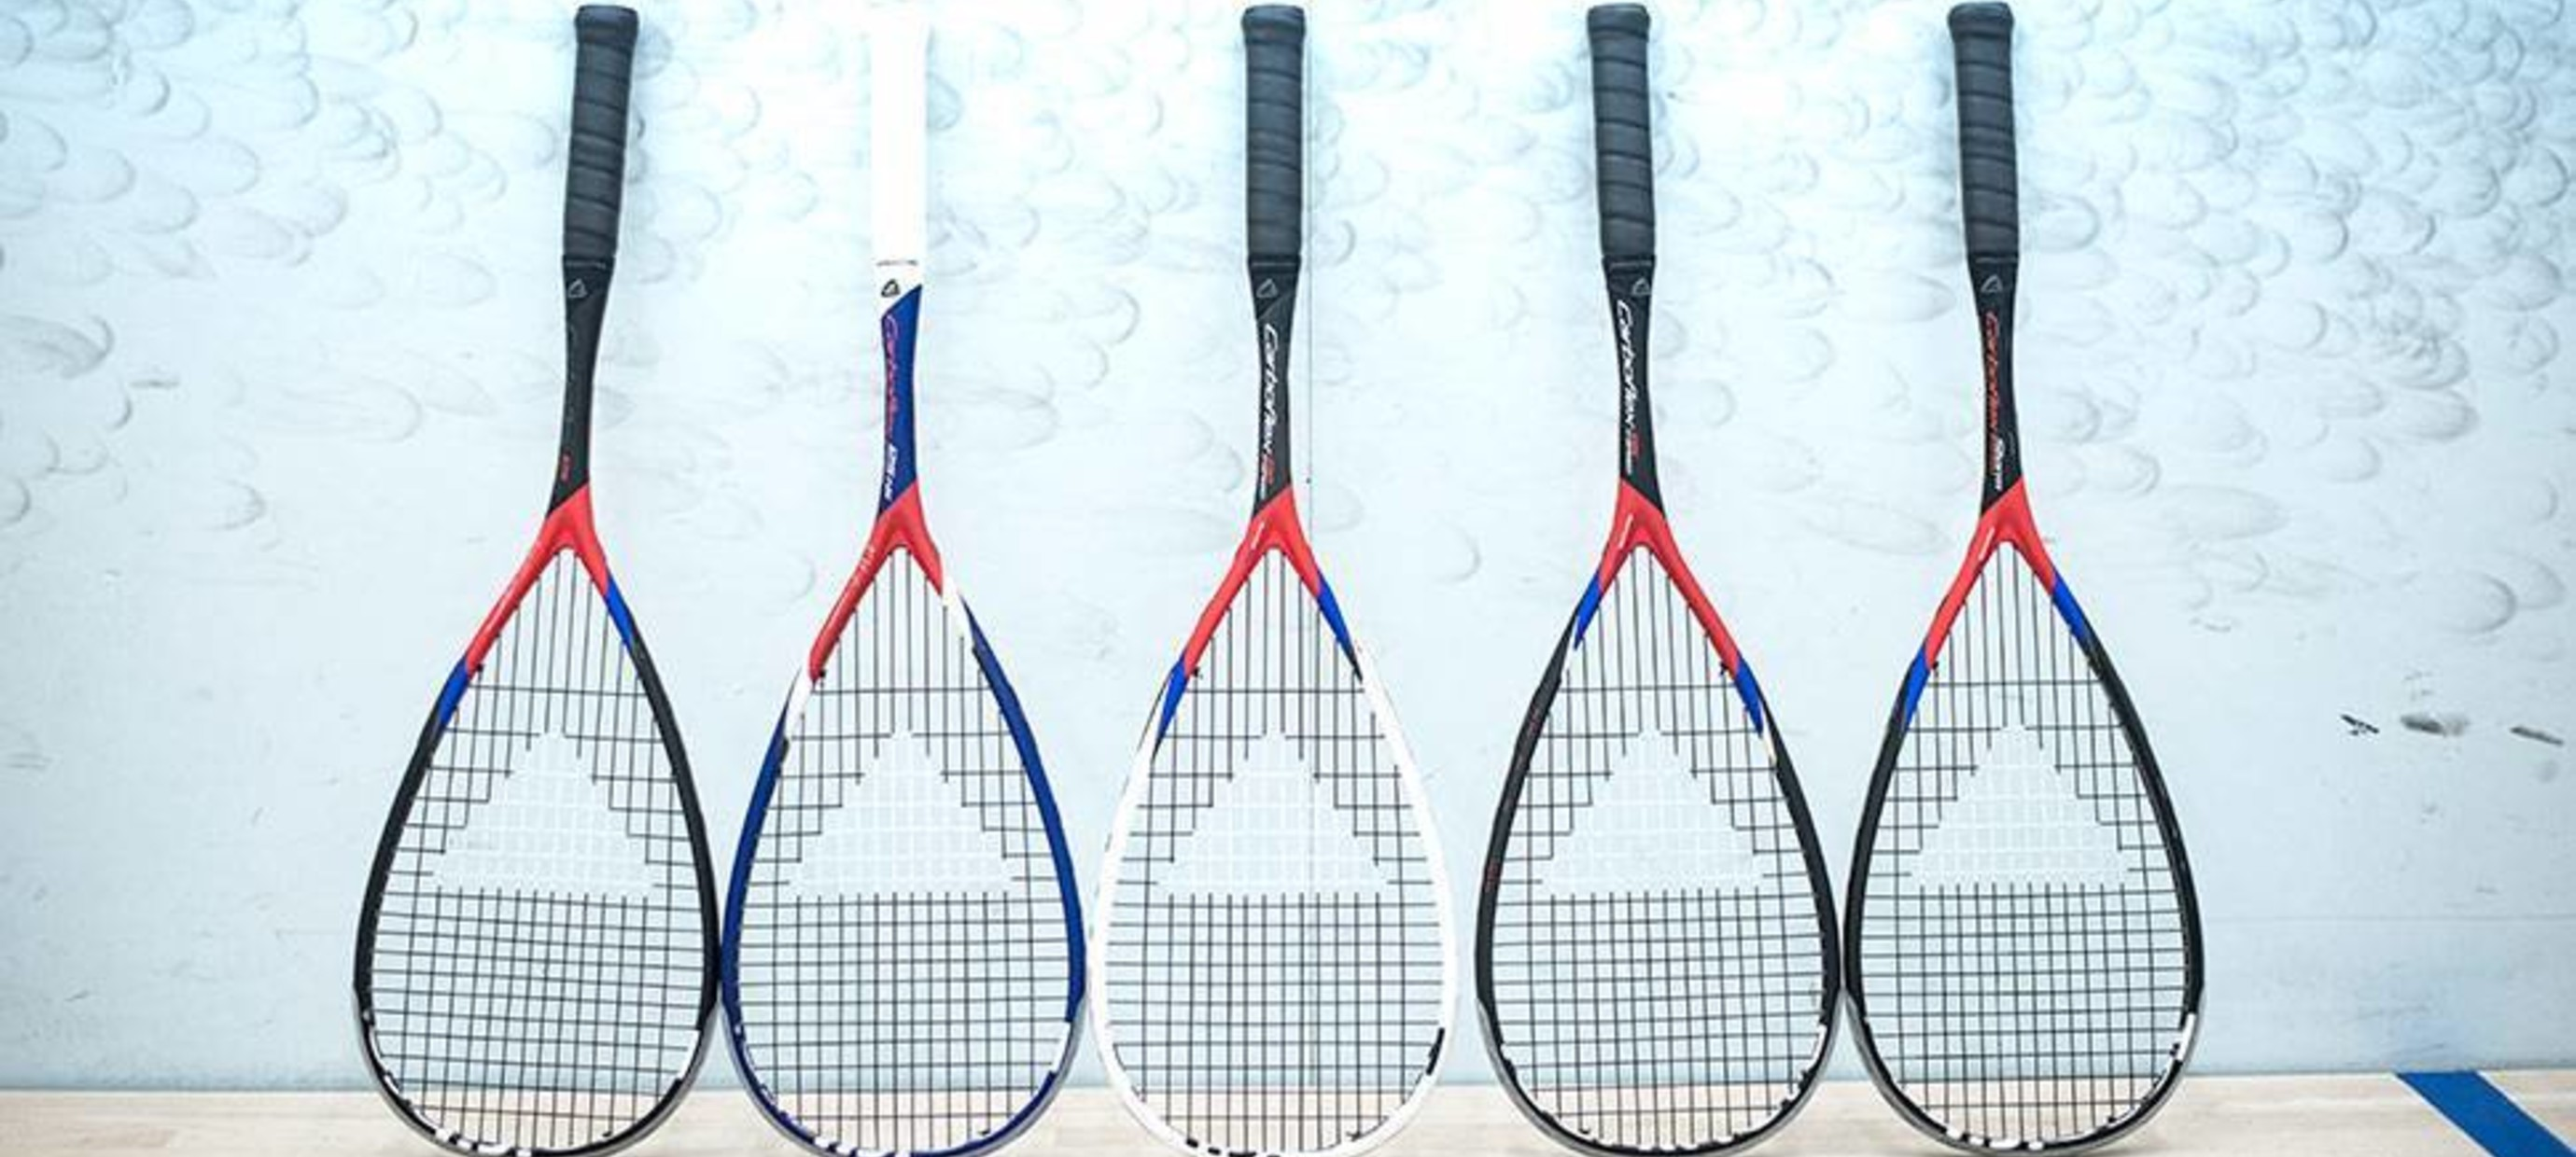 Differences between the Tecnifibre Carboflex X-Speed Squash Rackets